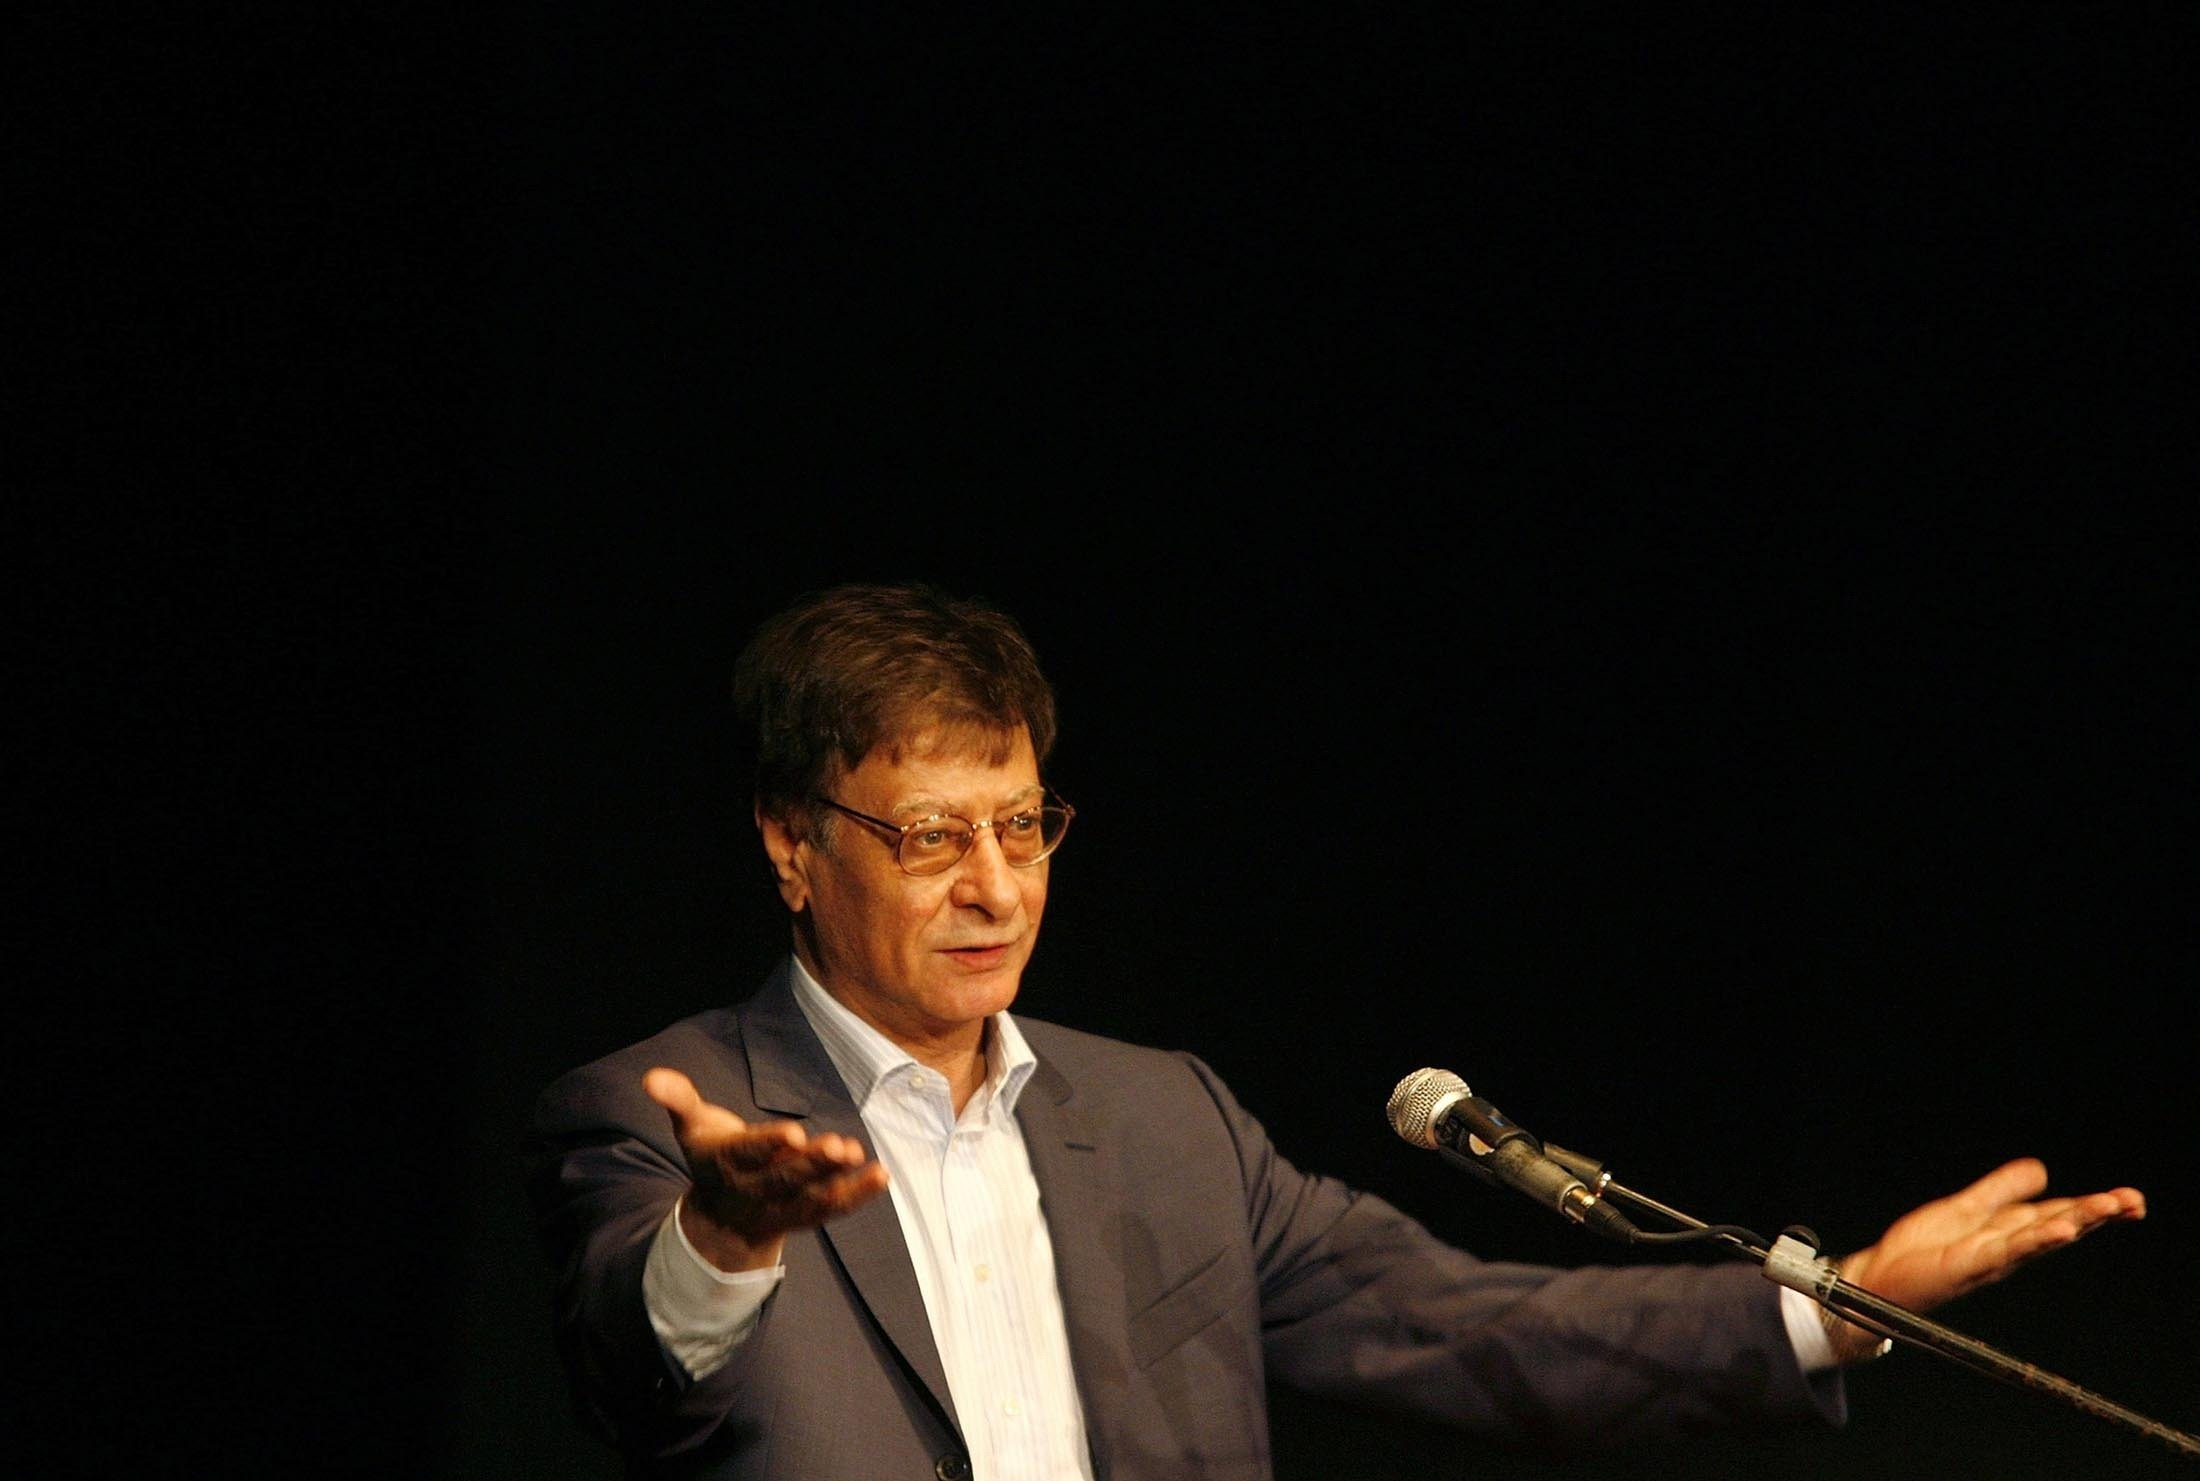 Palestinian poet and journalist Mahmoud Darwish reads during his poetry show in Haifa, Israel, July 15, 2007. (Getty Images)